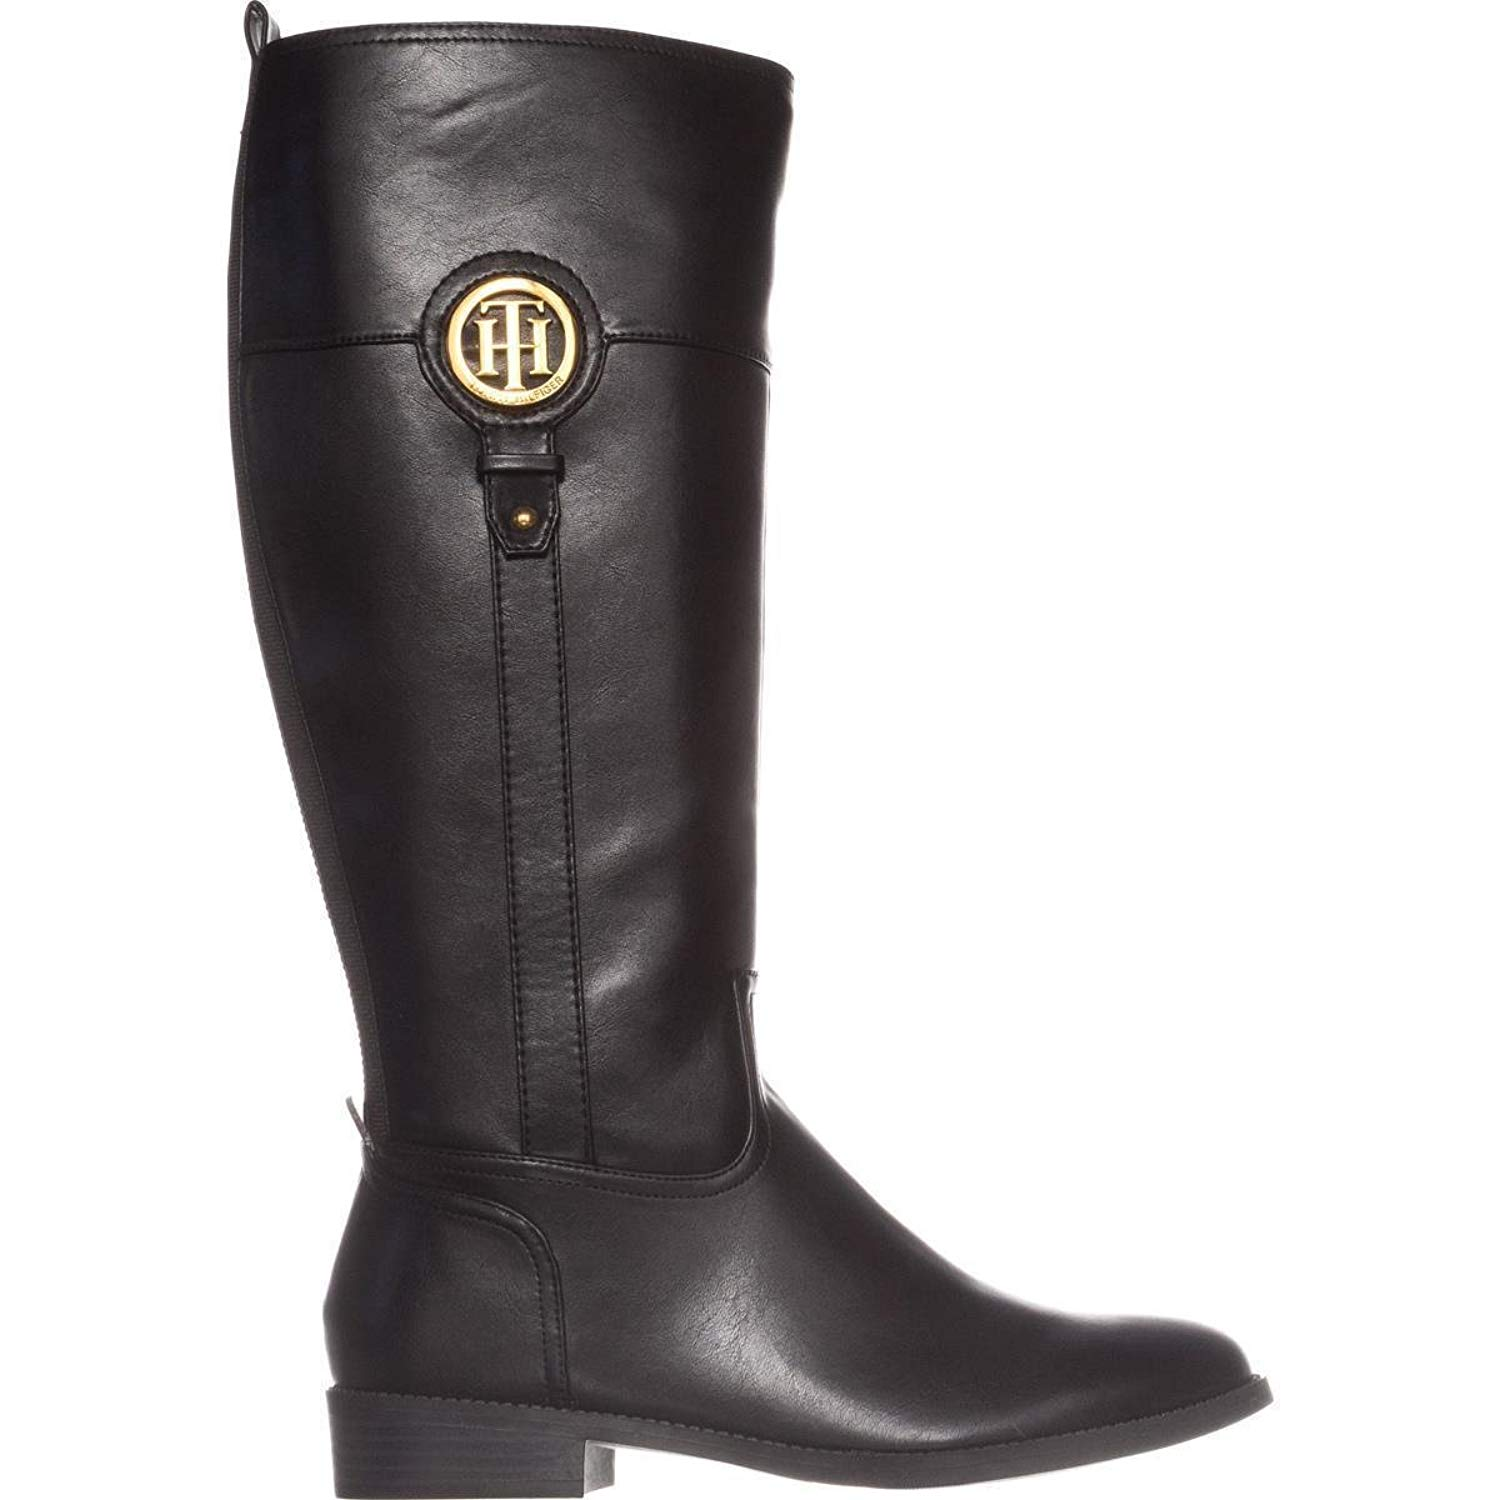 84e52232c Tommy Hilfiger Womens ilia-2 Almond Toe Knee High Fashion Boots